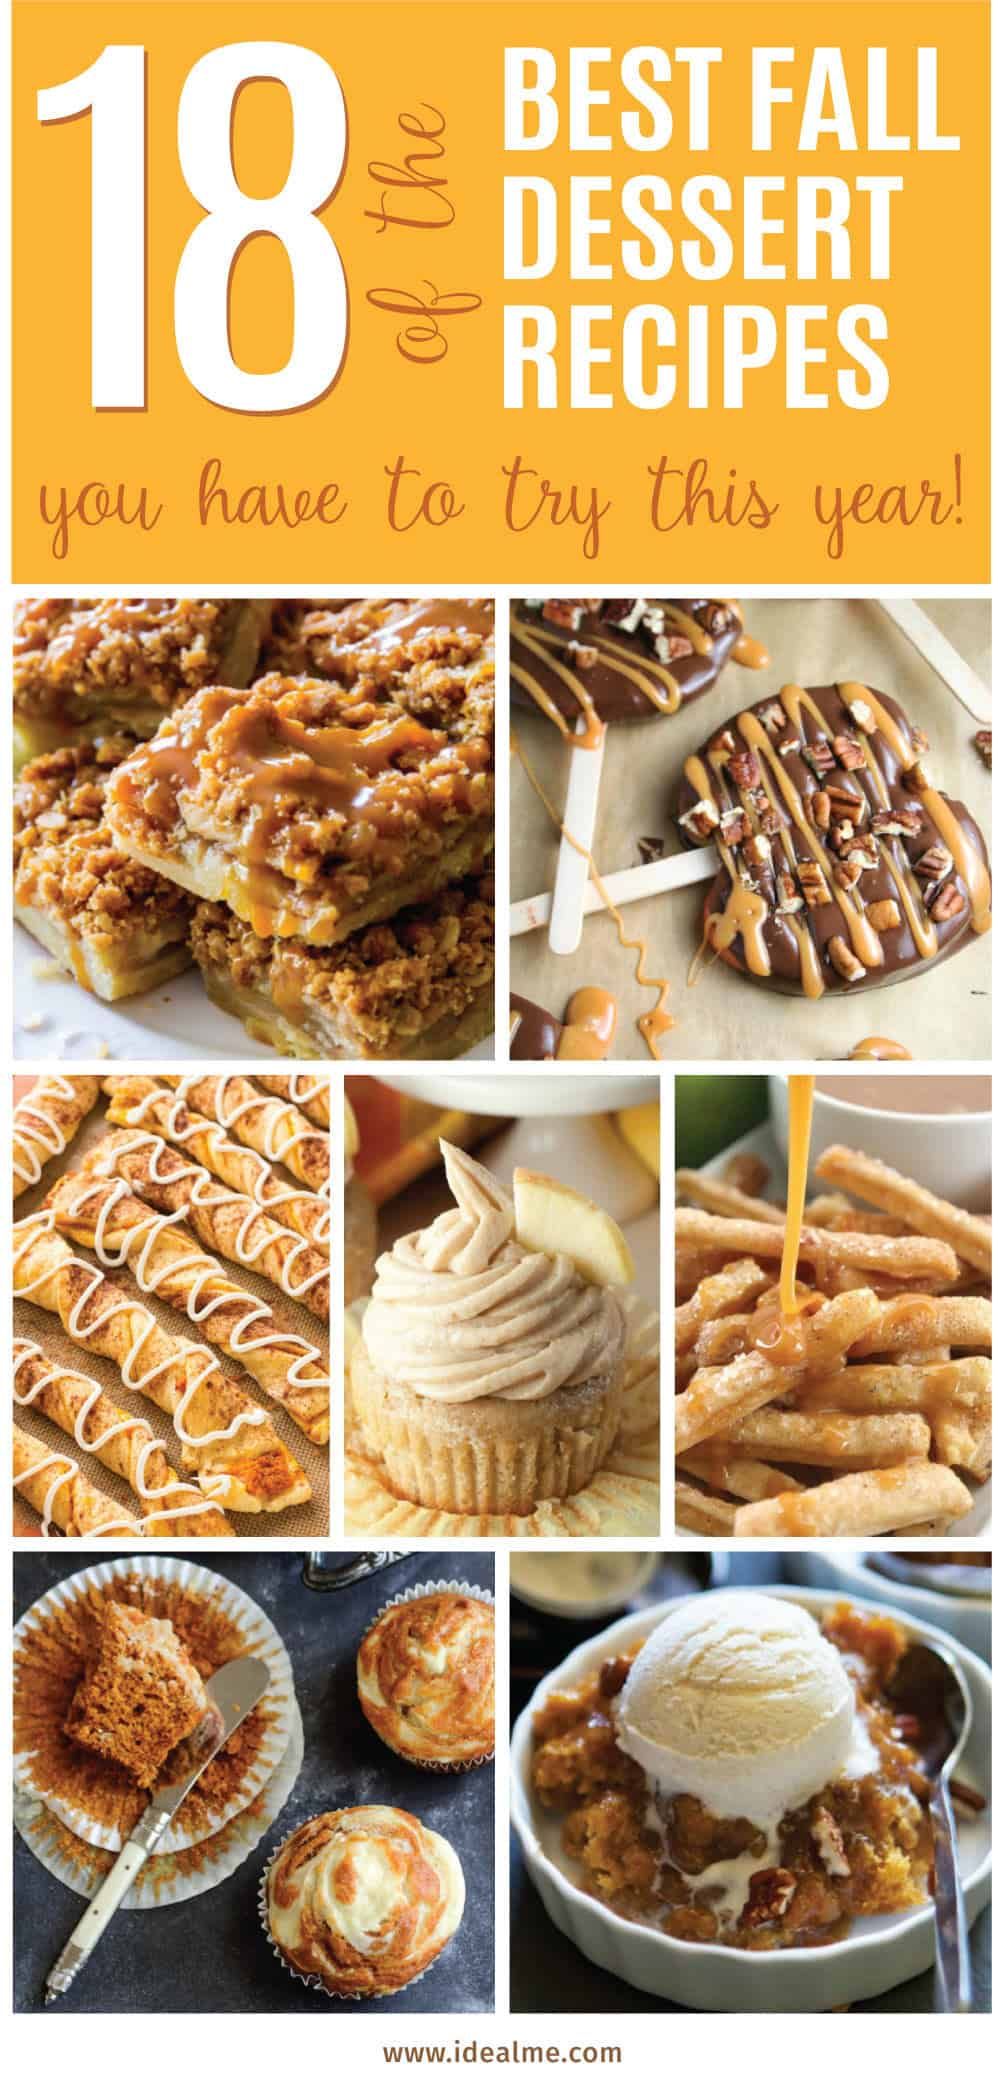 These Fall recipes are perfect for the holidays and for any time you want to bring the delicious smells of apple, cinnamon, and pumpkin into your home. You're guaranteed to find a fall flavor you love with these 18 delicious fall dessert recipes.